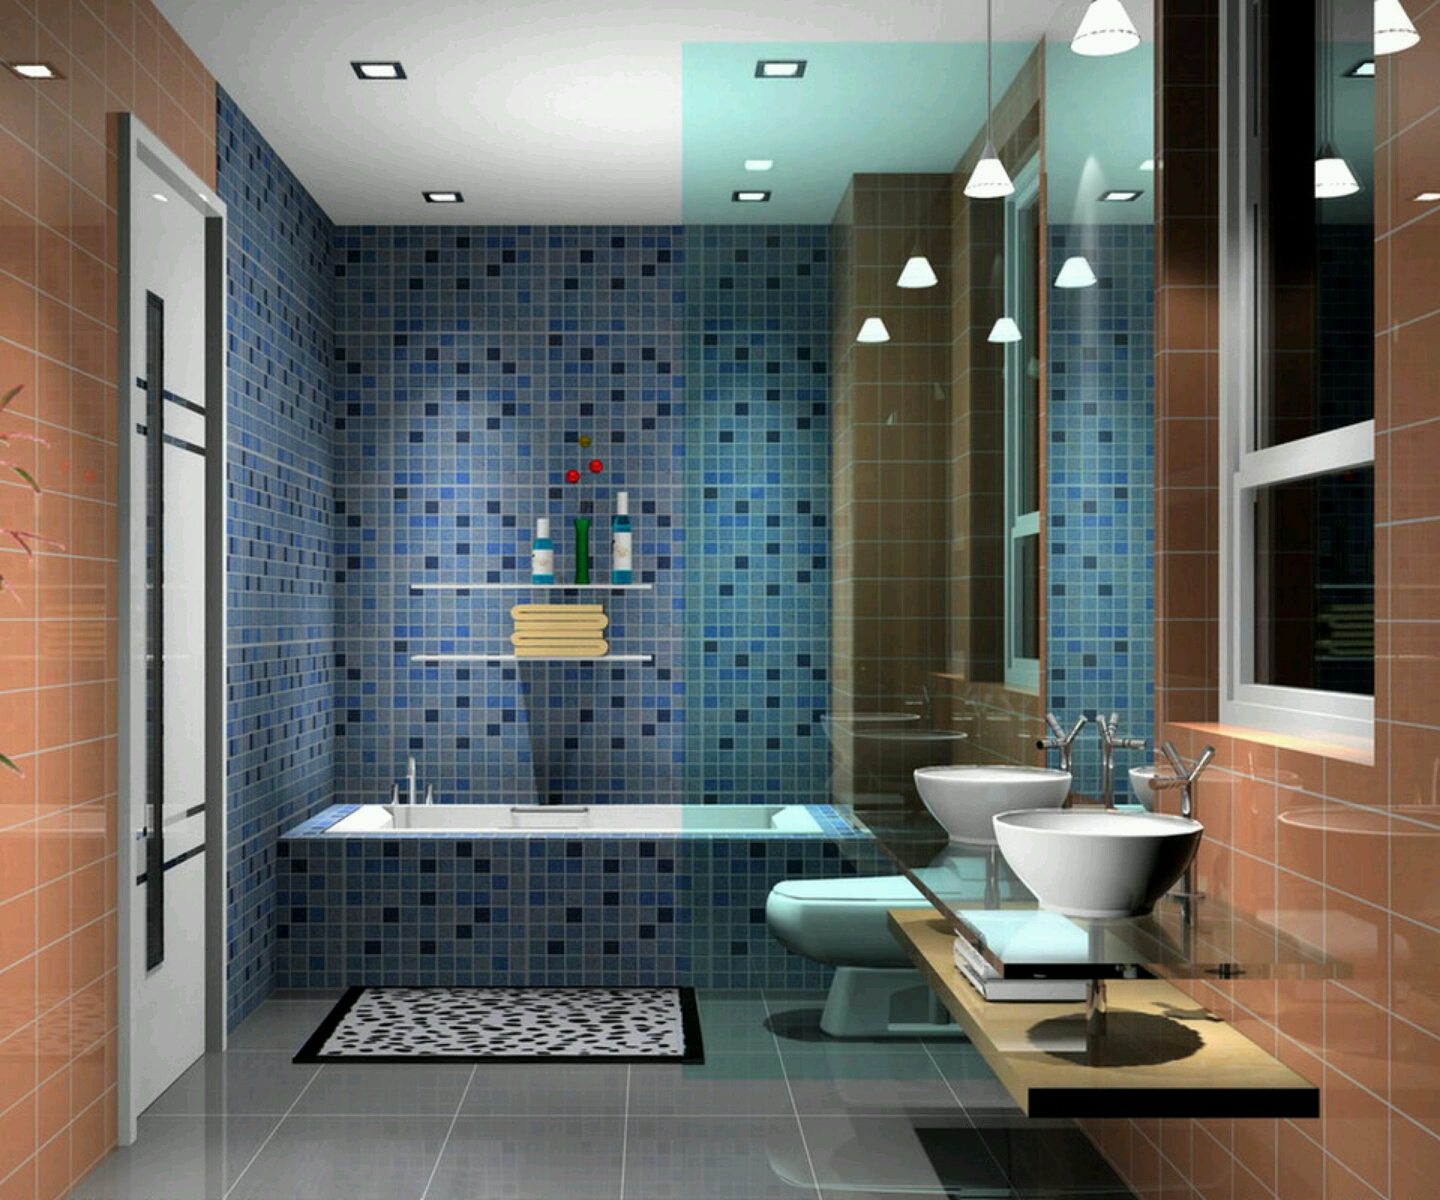 Modern bathrooms best designs ideas - Modern bathroom images ...